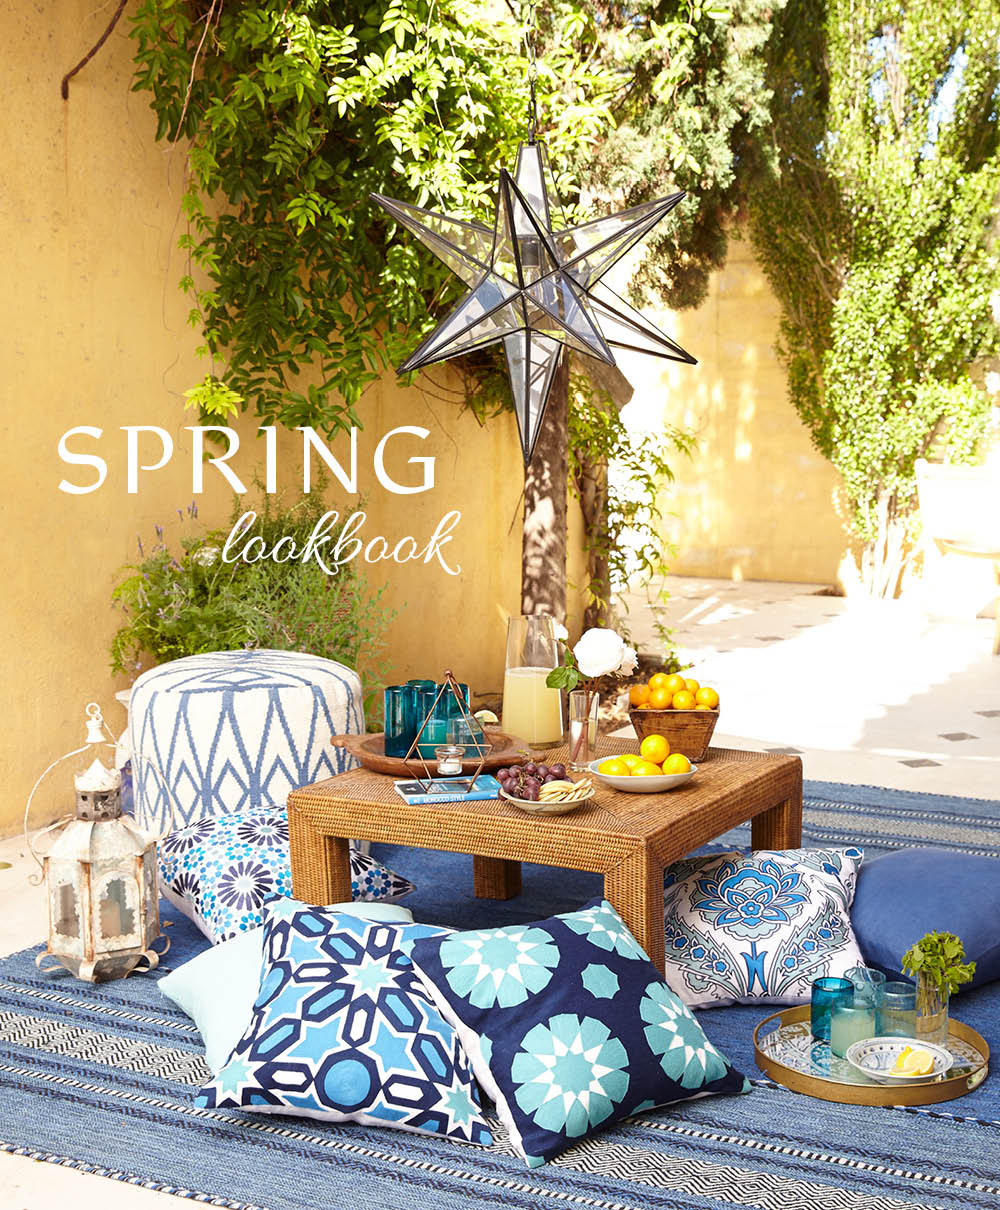 Mediterranean Spring Campaign, Art Direction and Graphic Design, Jessica Oviedo